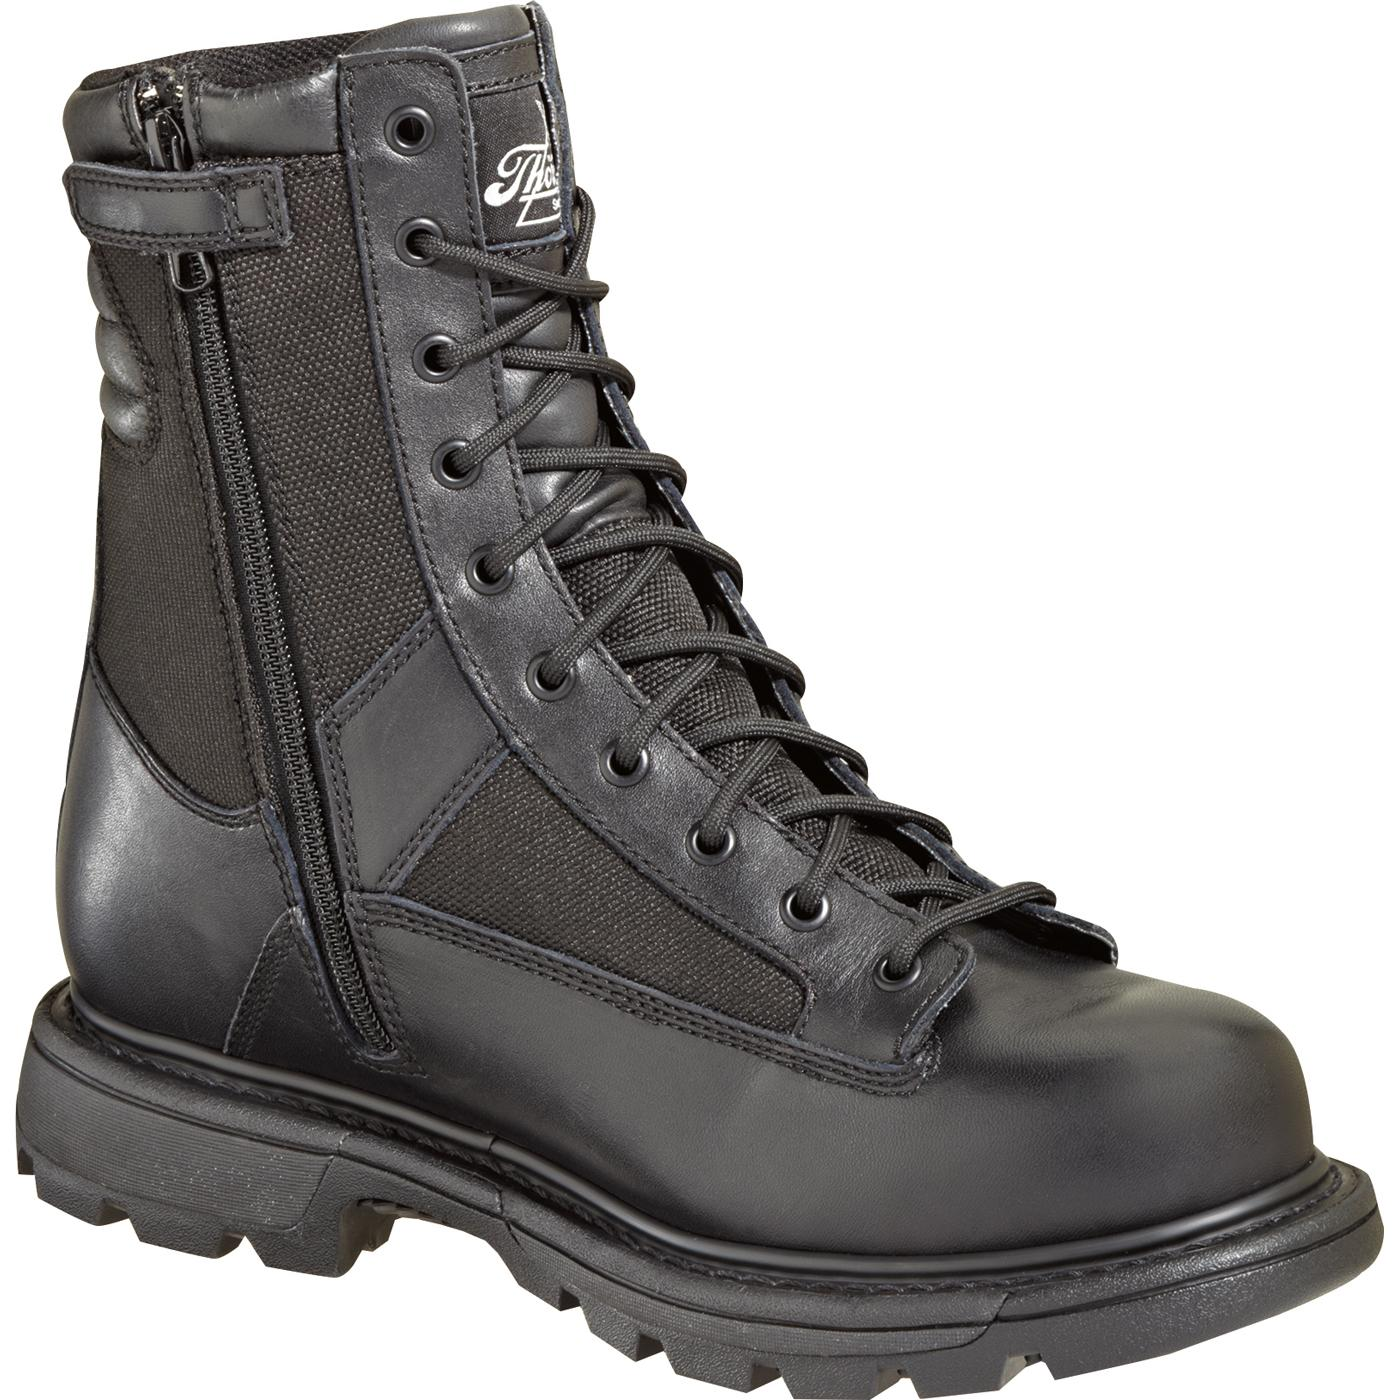 Thorogood Trooper Side Zipper Duty Work Boot 834 7991